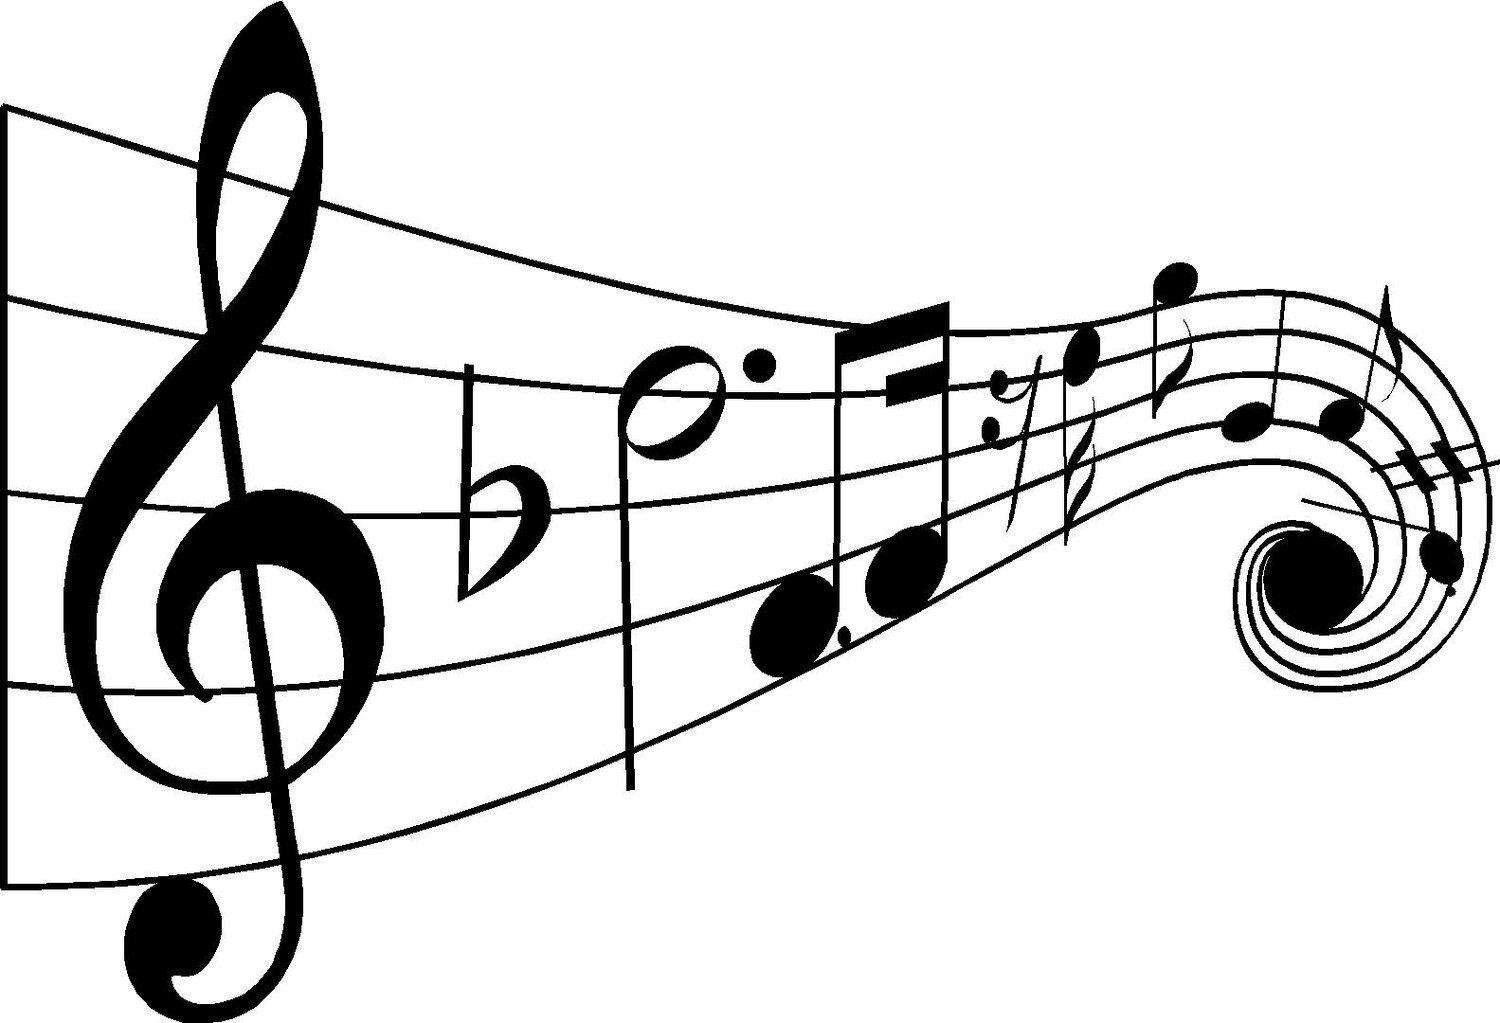 Music Notes Drawings